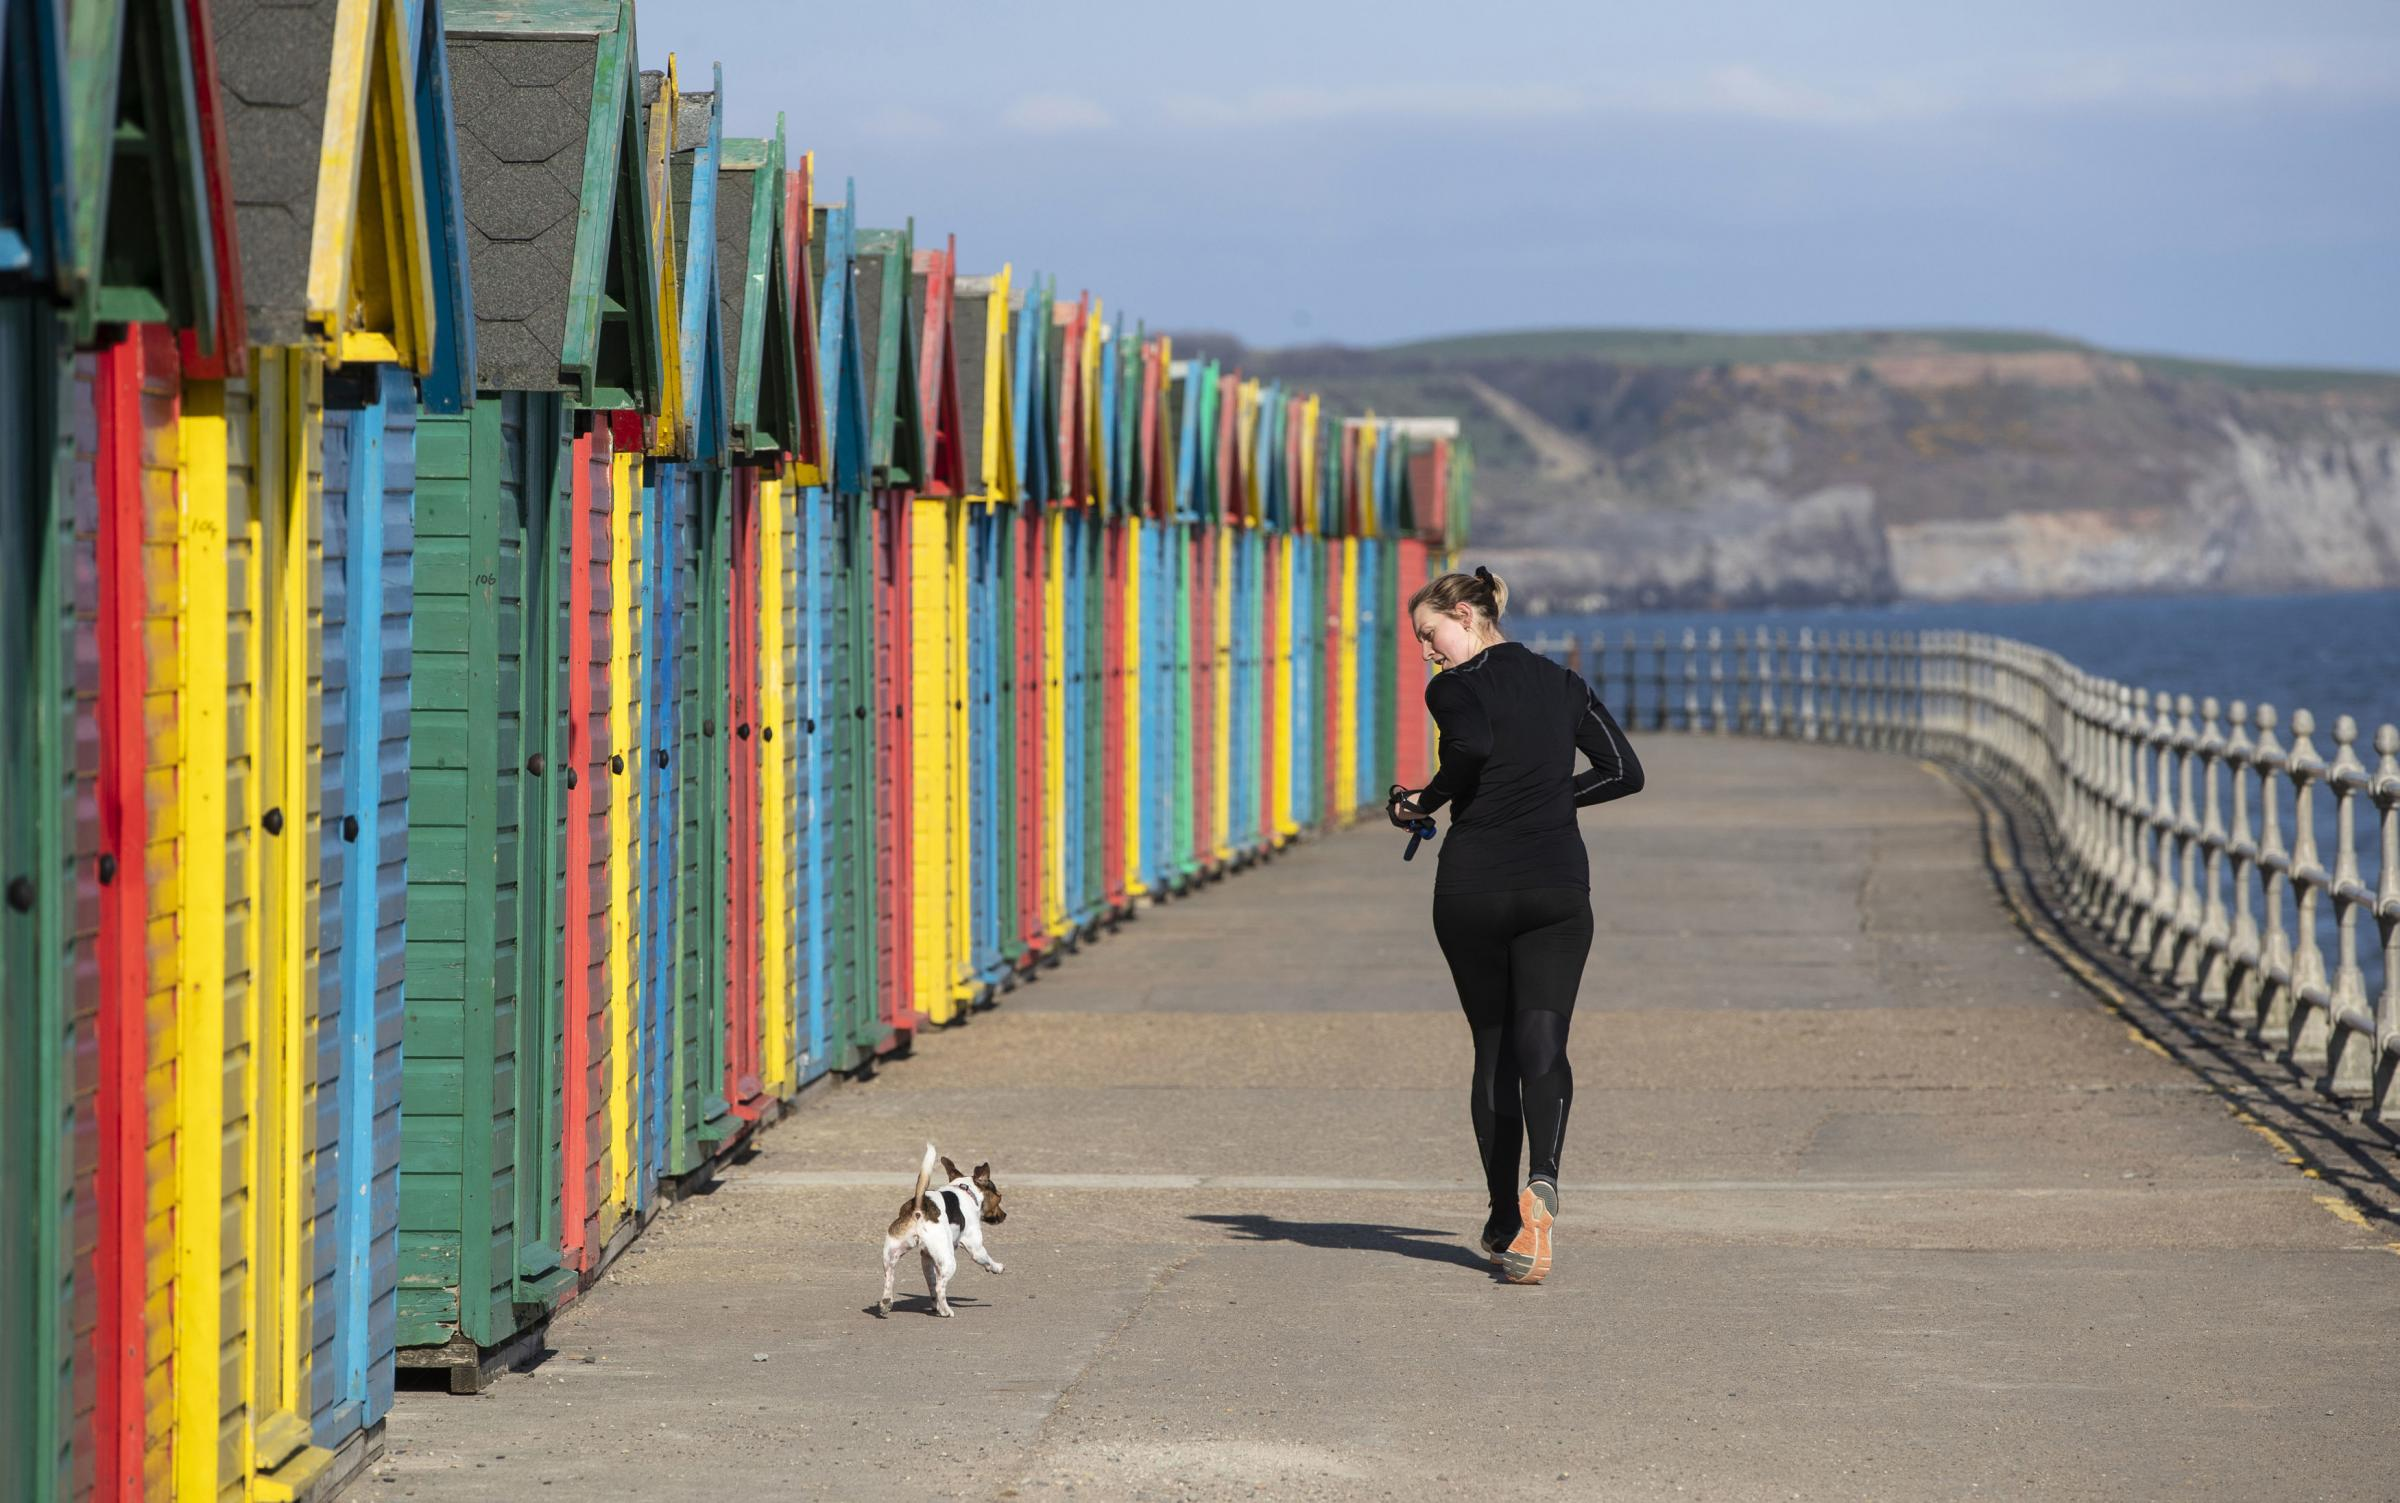 A woman jogging with her dog near colourful beach huts on Whitby beach in Yorkshire. PRESS ASSOCIATION Photo. Picture date: Friday April 12, 2019. See PA story WEATHER Spring. Photo credit should read: Danny Lawson/PA Wire.